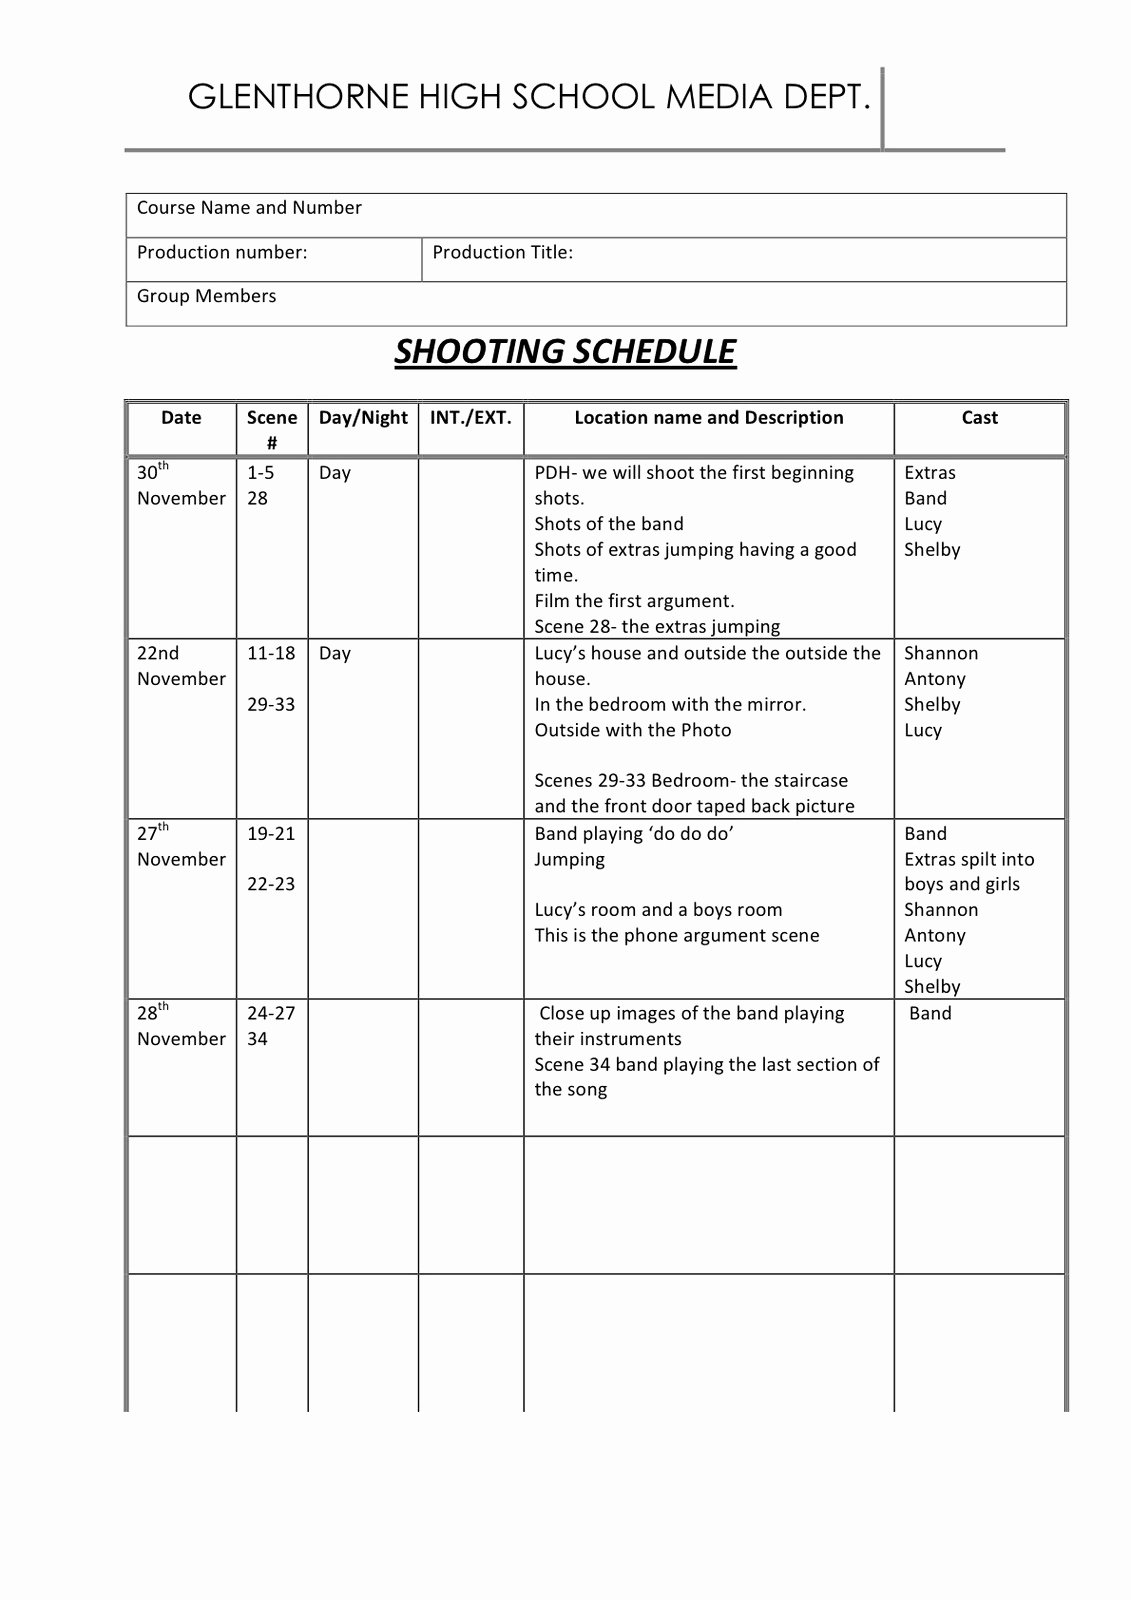 Photo Shoot Schedule Template New Shelby norman P12 Shooting Schedule